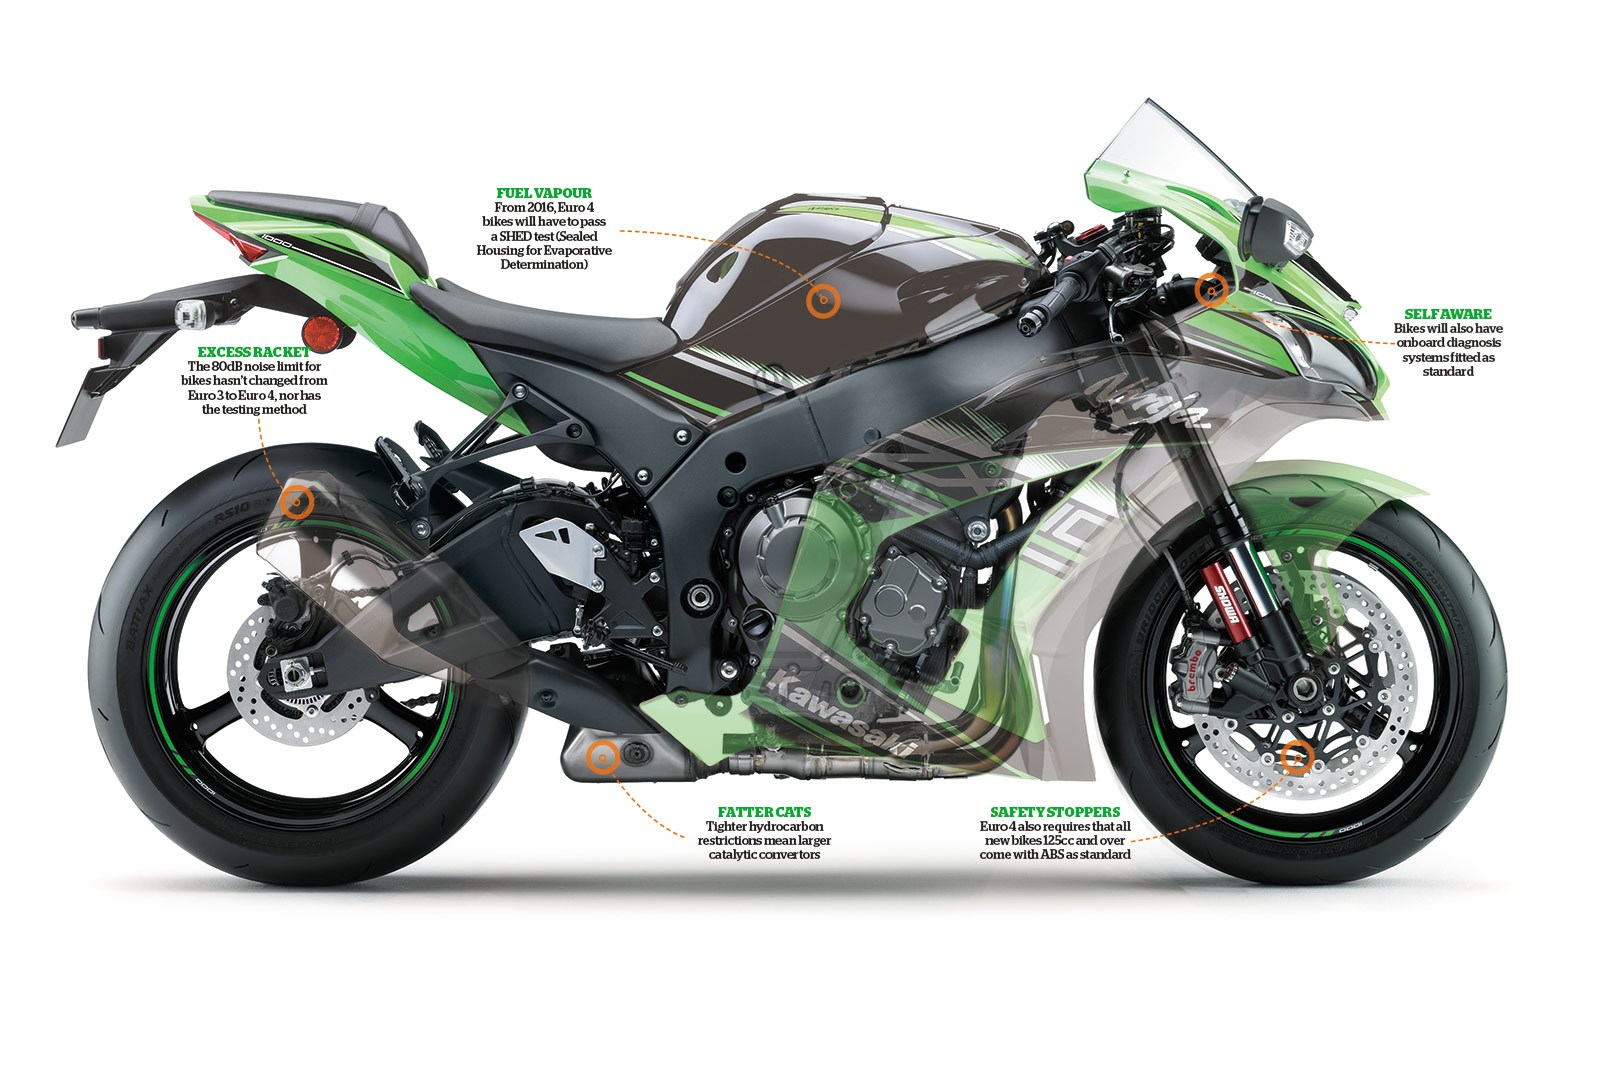 Emissions Impossible What Euro 4 Really Means Mcn 2006 Honda 50cc Dirt Bike Share This Article